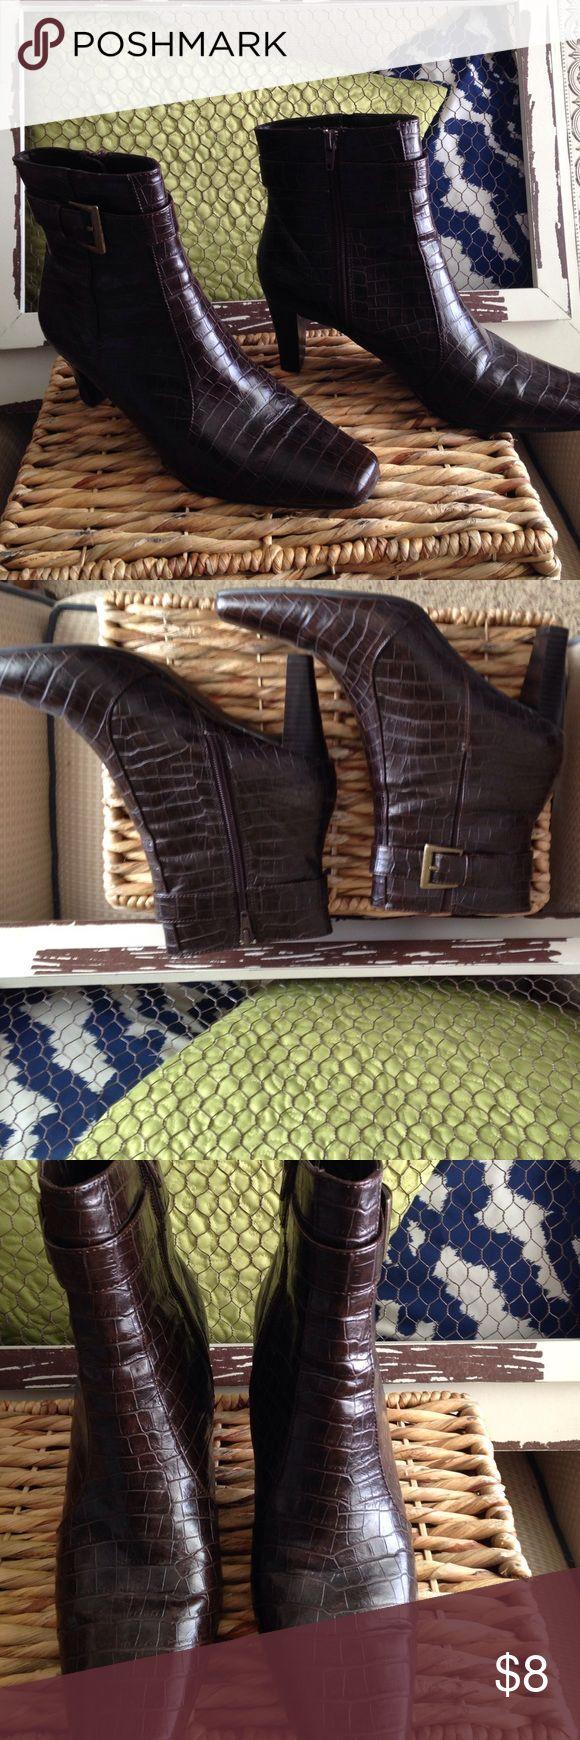 "Women's chocolate brown animal skin booties. These are in great condition! Gold buckle. 2.5"" heel. predictions Shoes Ankle Boots & Booties"